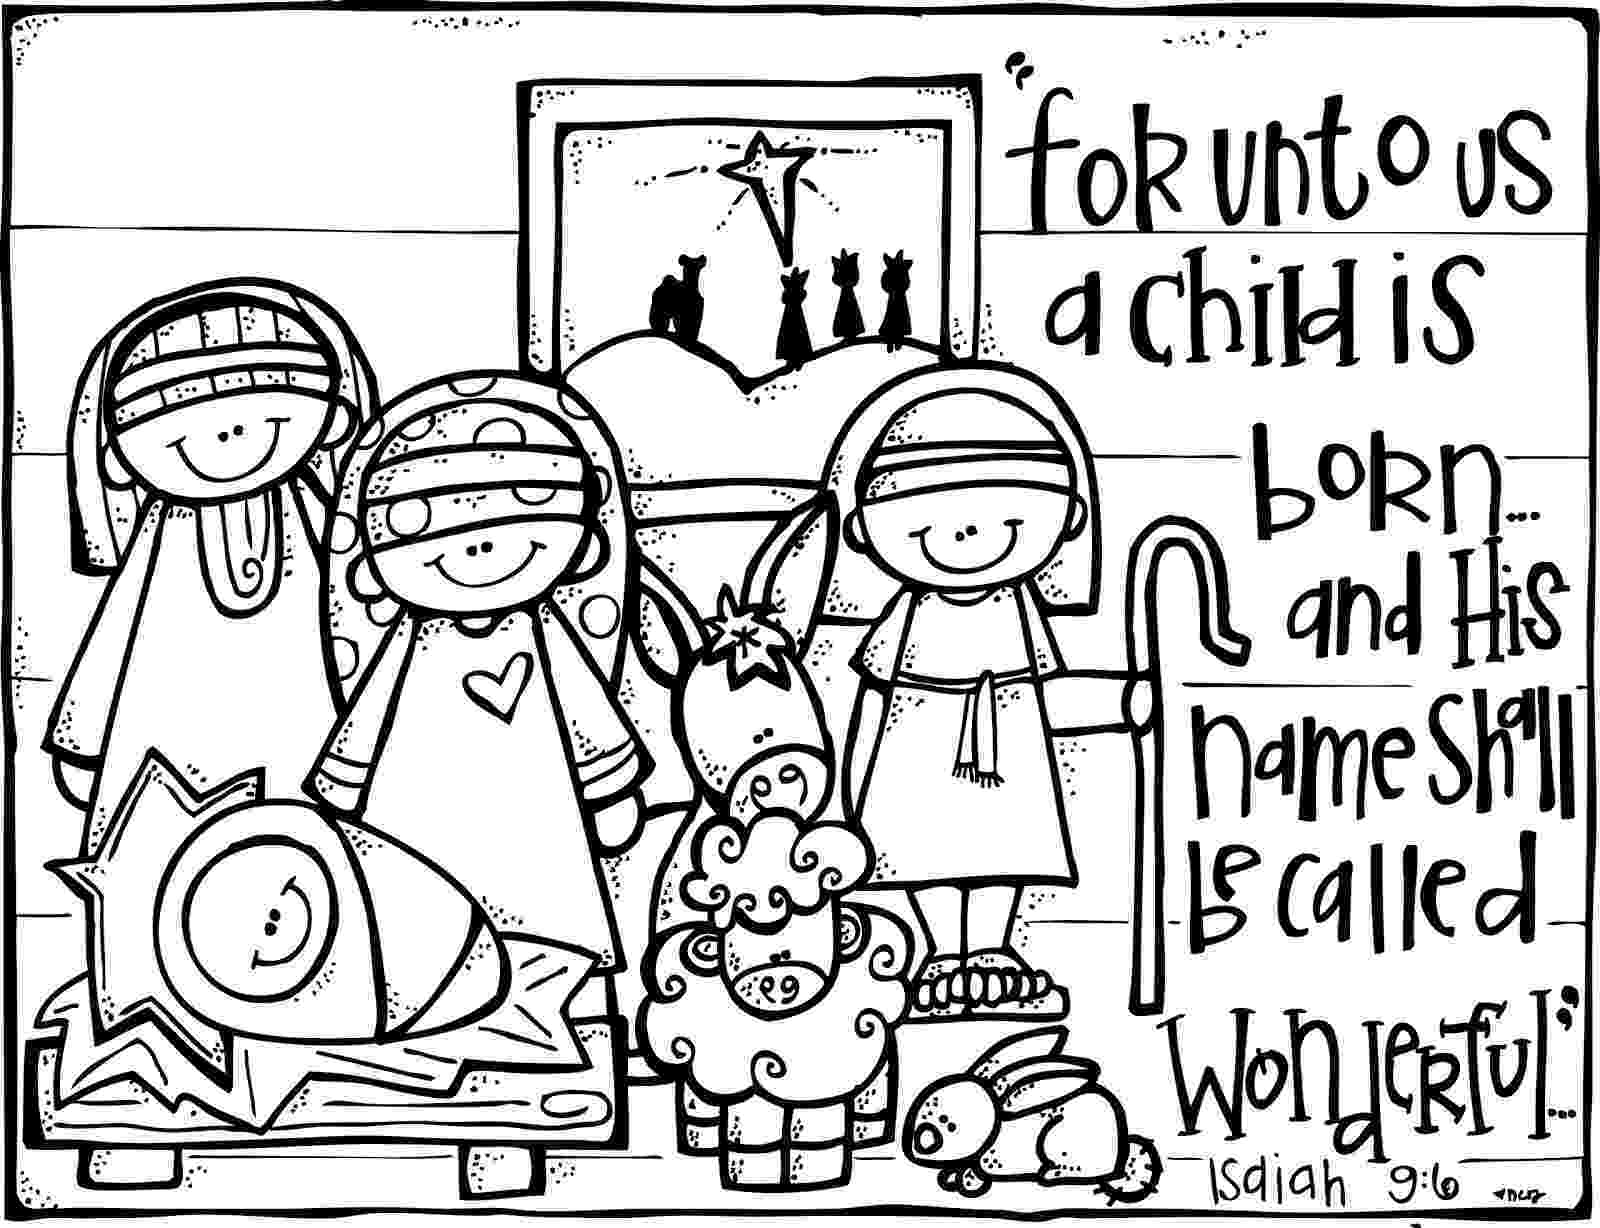 nativity coloring sheets printable zucchini summer 4 reasons we give our kids 4 christmas gifts coloring printable sheets nativity